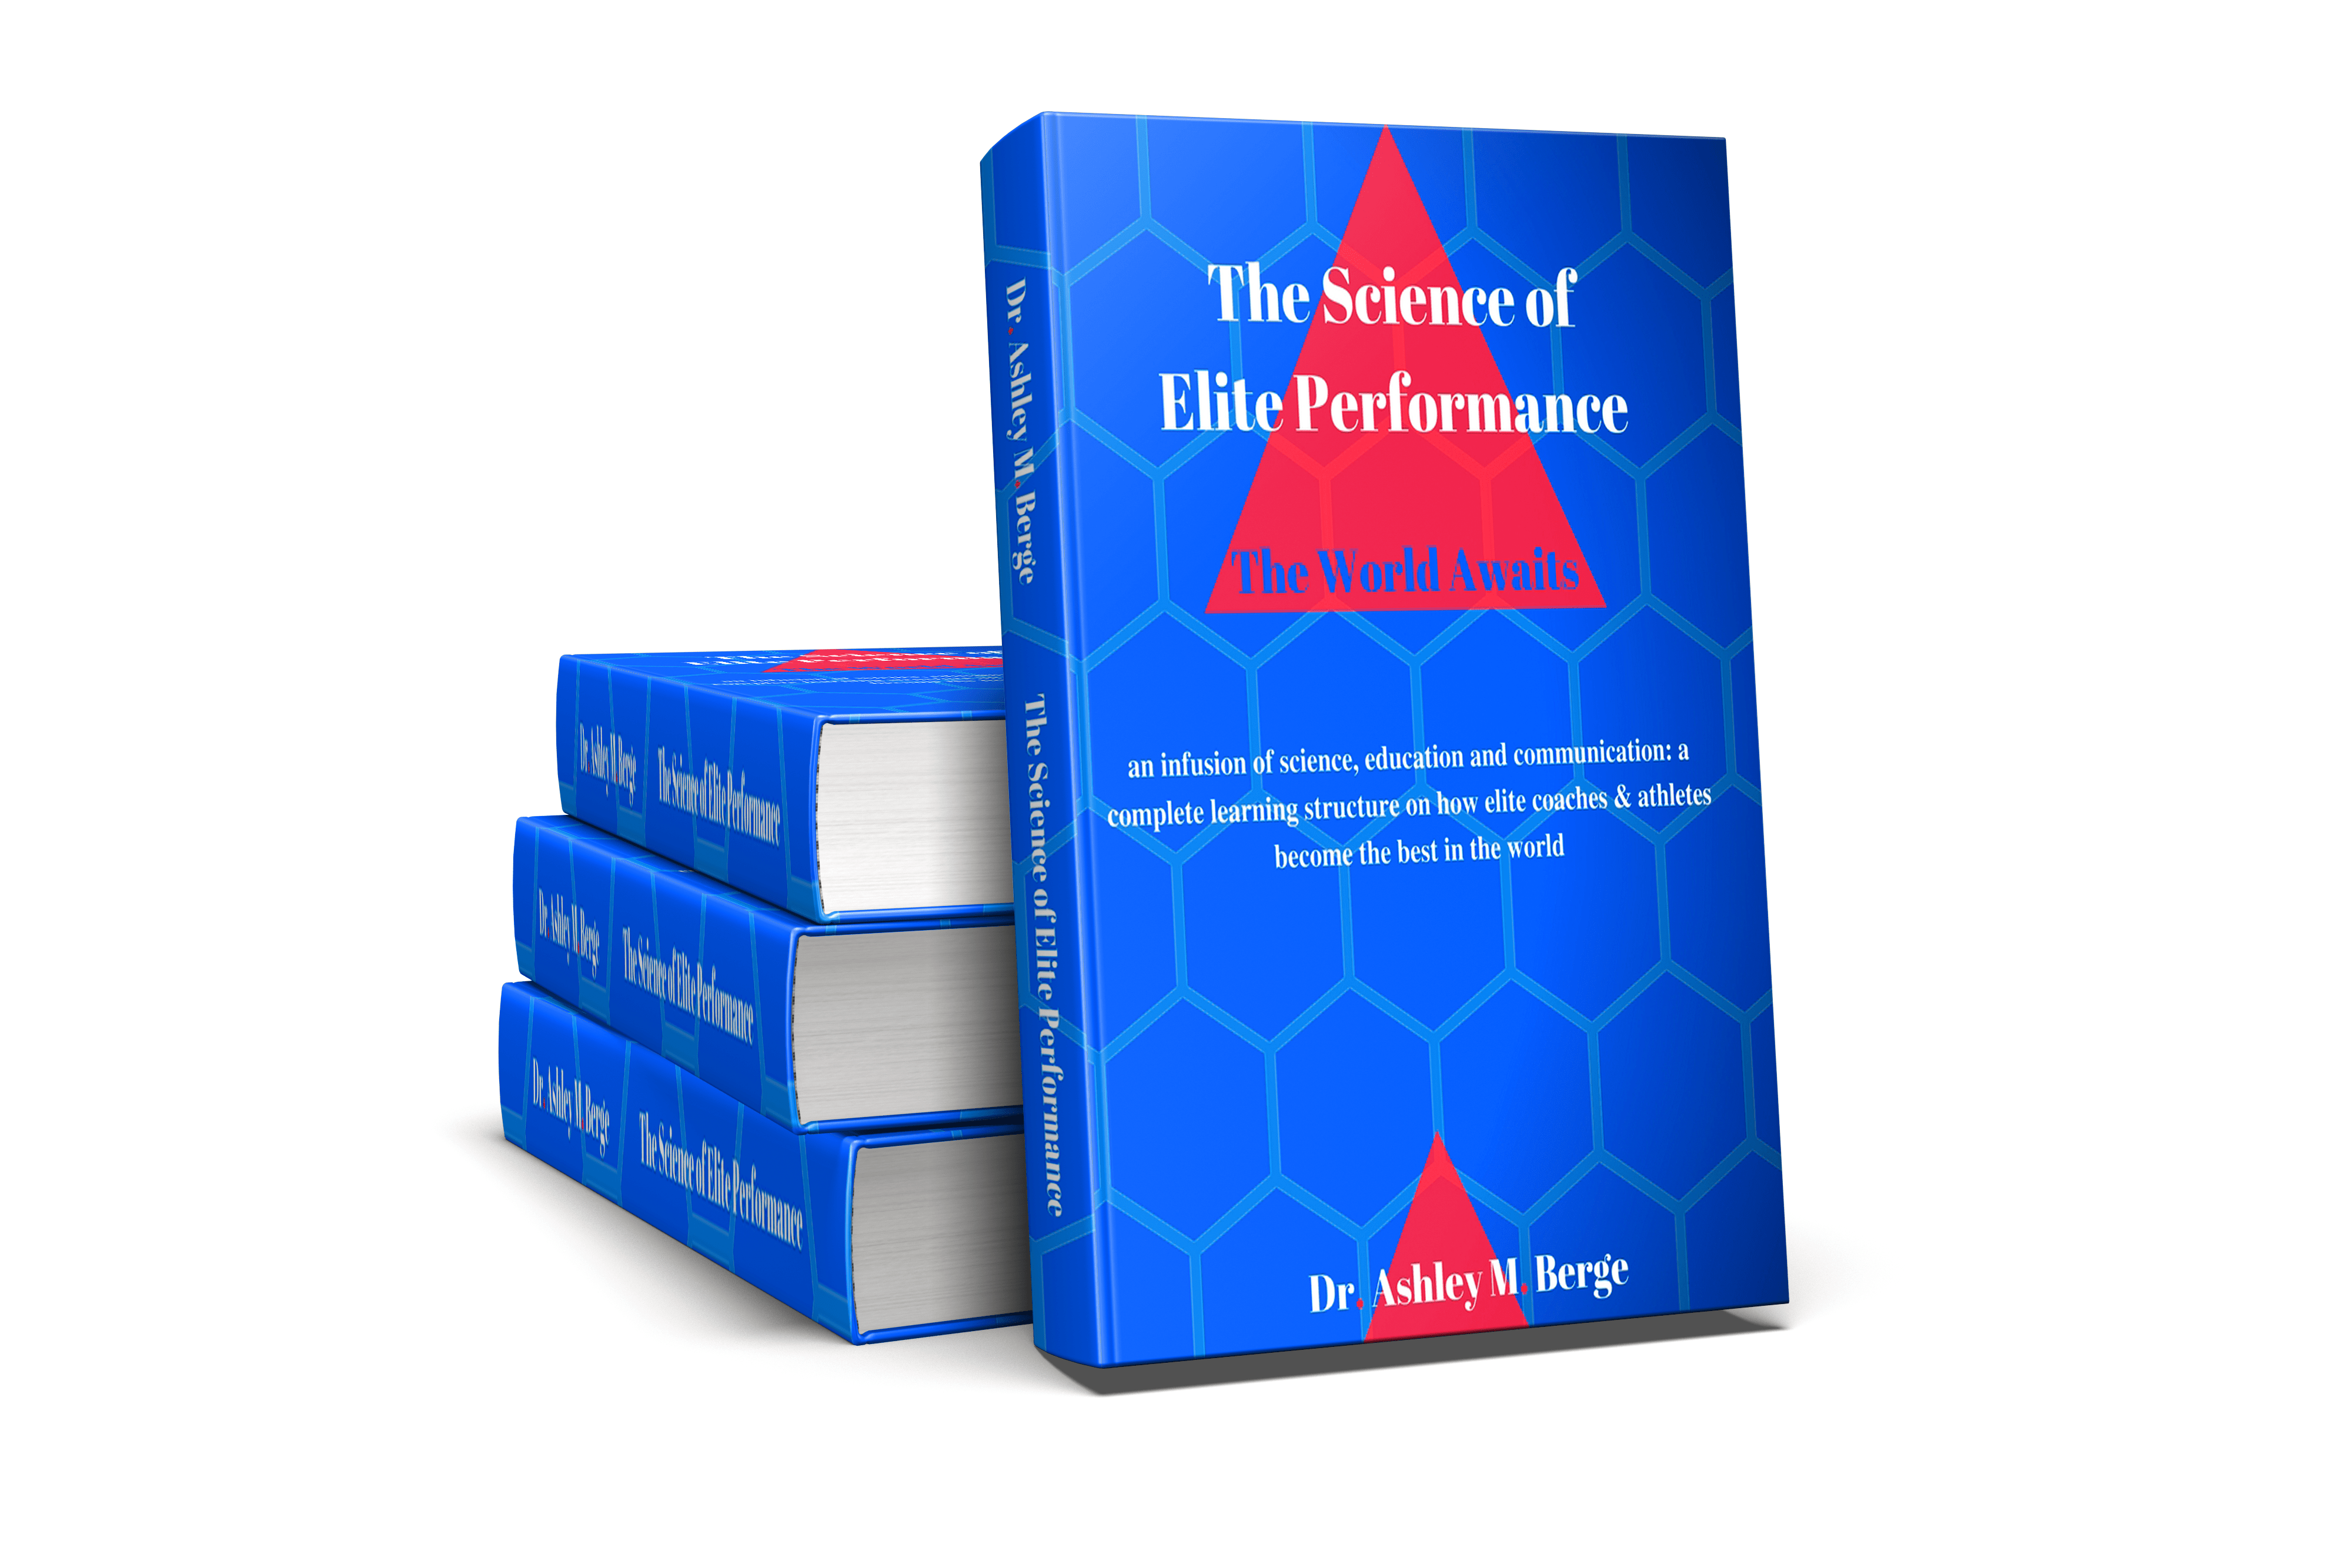 """The Science of <a href=""""https://am8international.com/product/the-science-of-elite-performance/"""" data-type=""""product"""" data-id=""""15183"""" rel=""""nofollow"""">Elite Performance</a>"""